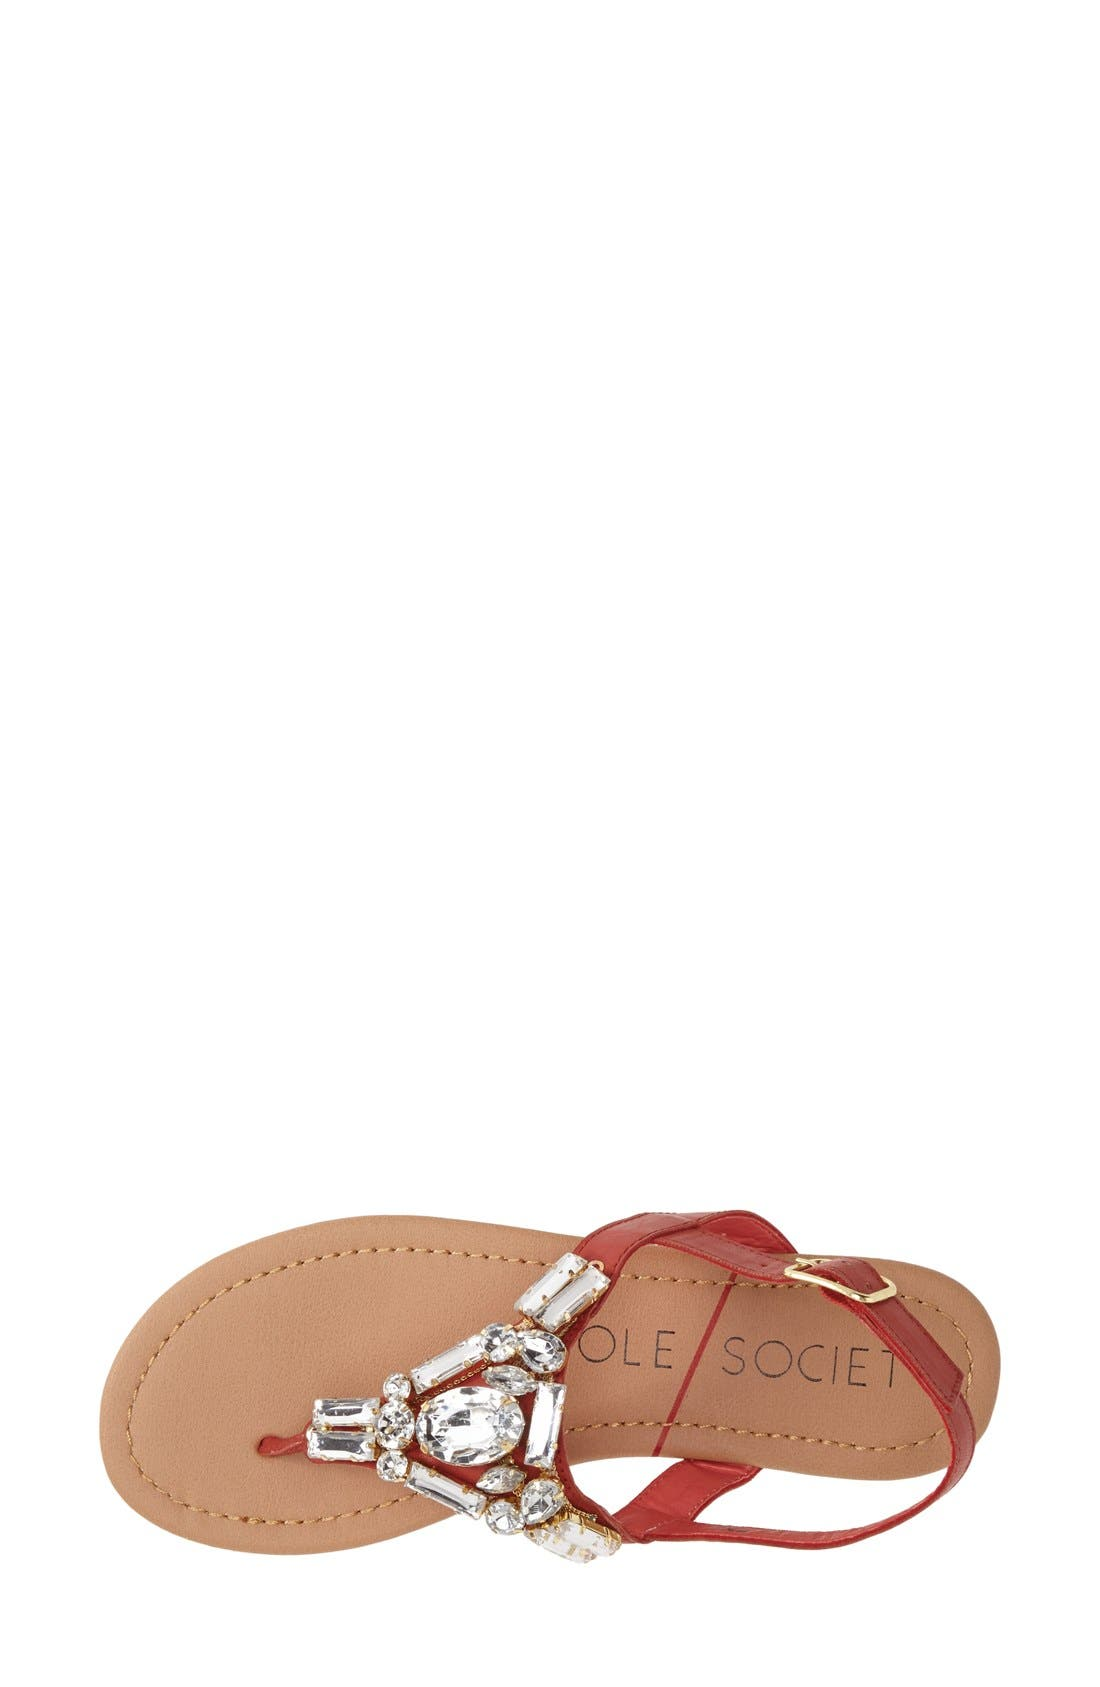 Alternate Image 3  - Sole Society 'Angelin' Crystal Sandal (Women)